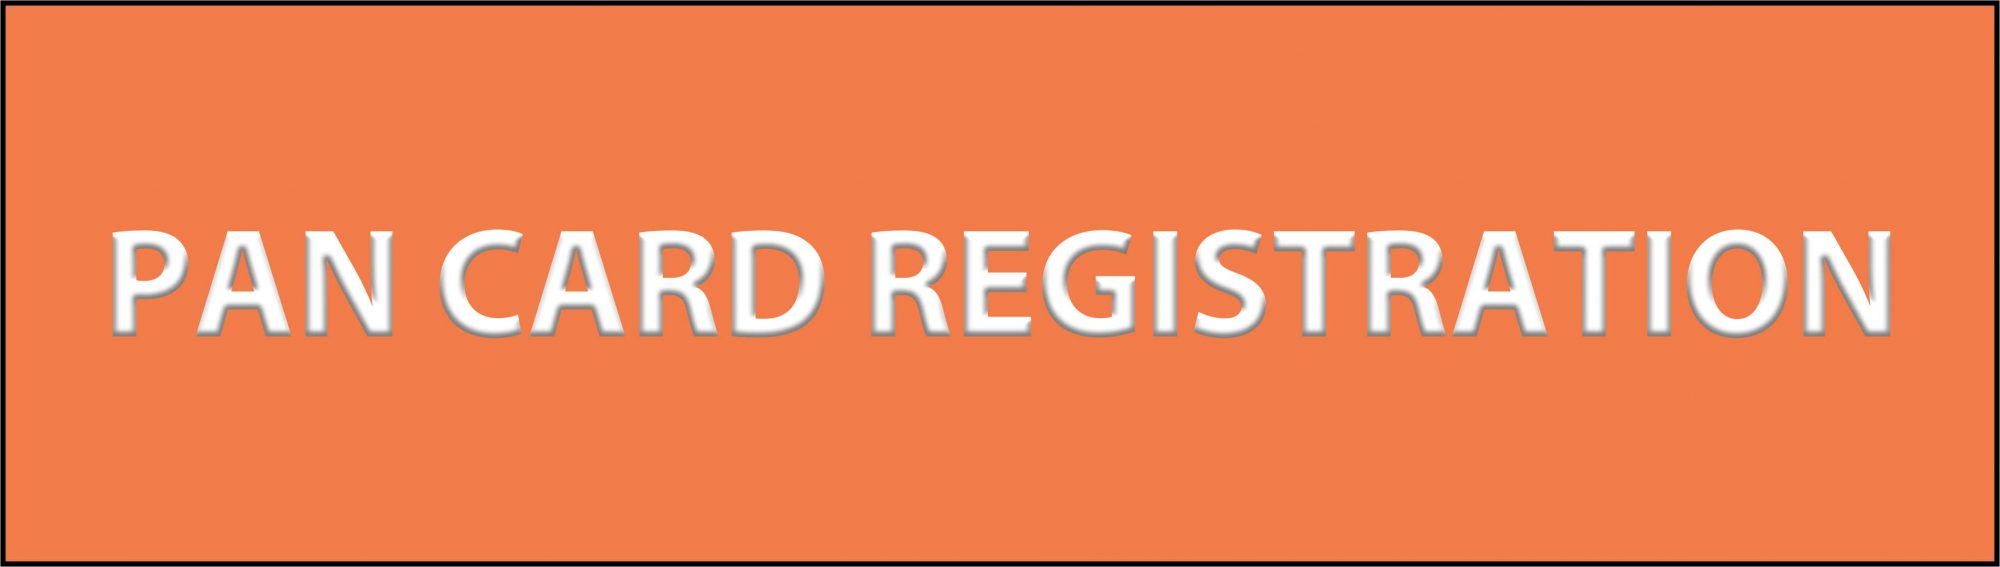 Pan card registration scaled